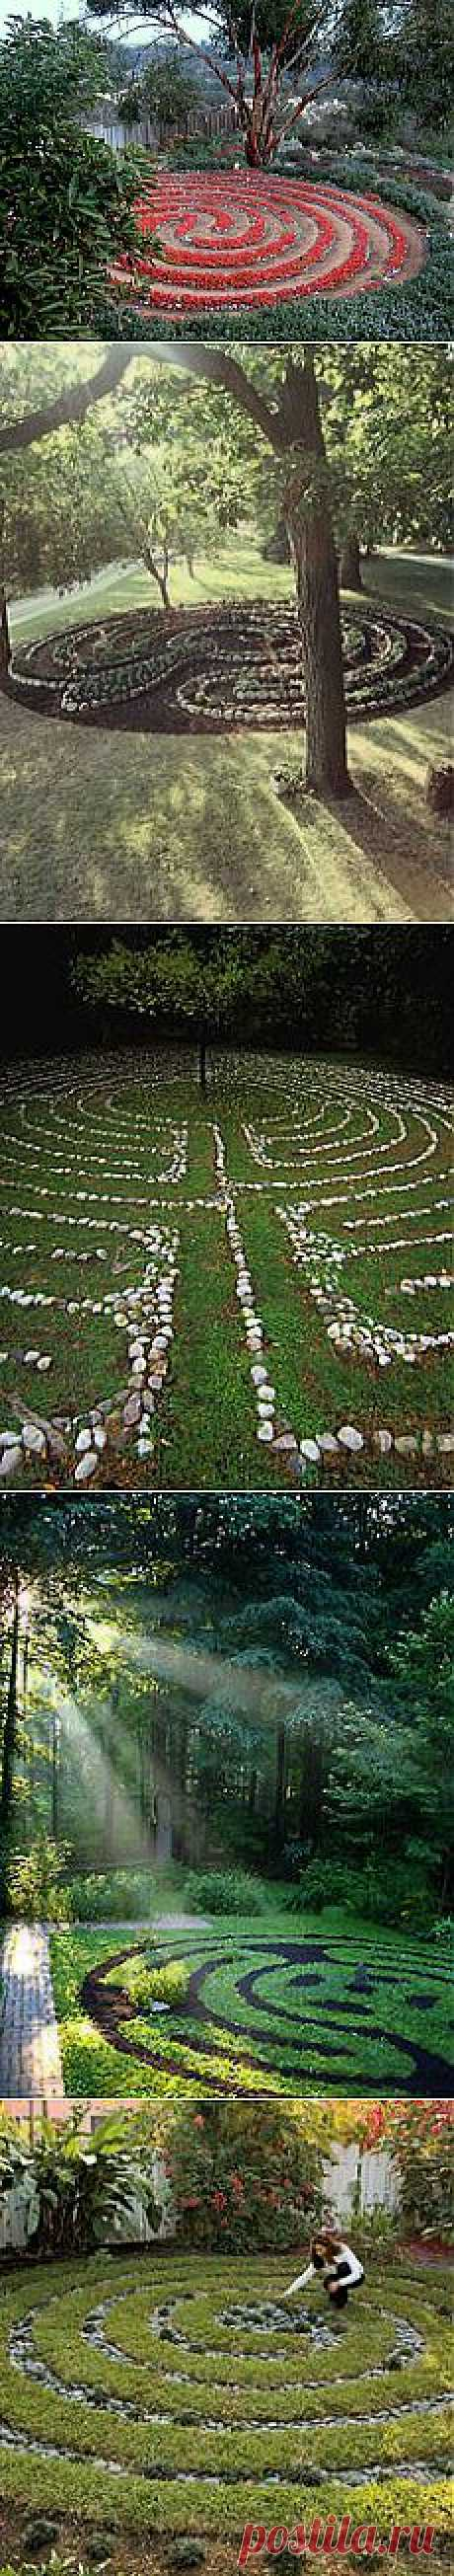 Labyrinth garden. Beautiful!   Art Therapy and Integrative Medicine …